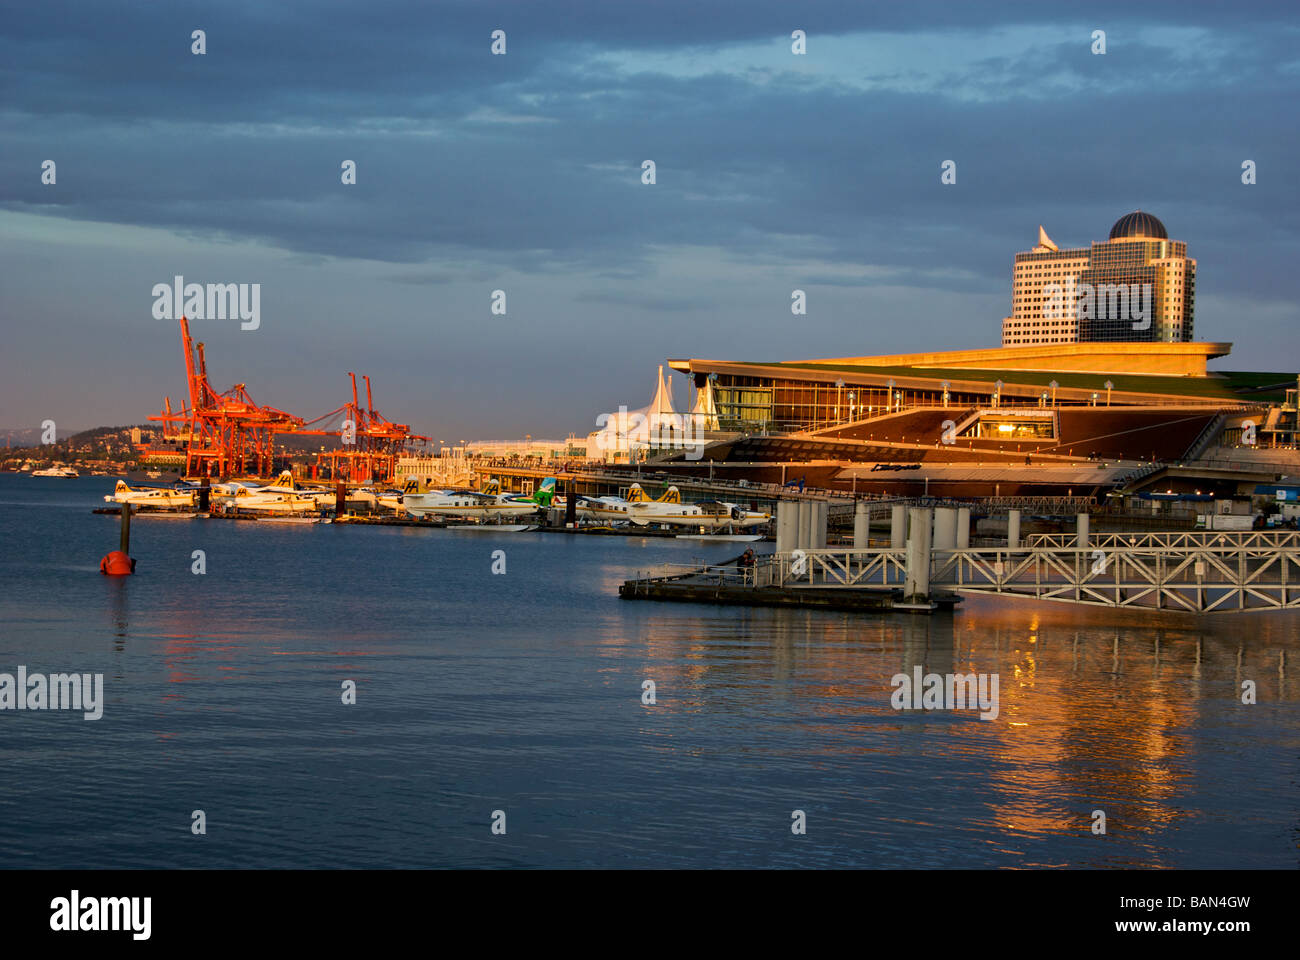 New Vancouver Trade and Convention Centre Extension and busy harbour in glow of setting sun - Stock Image